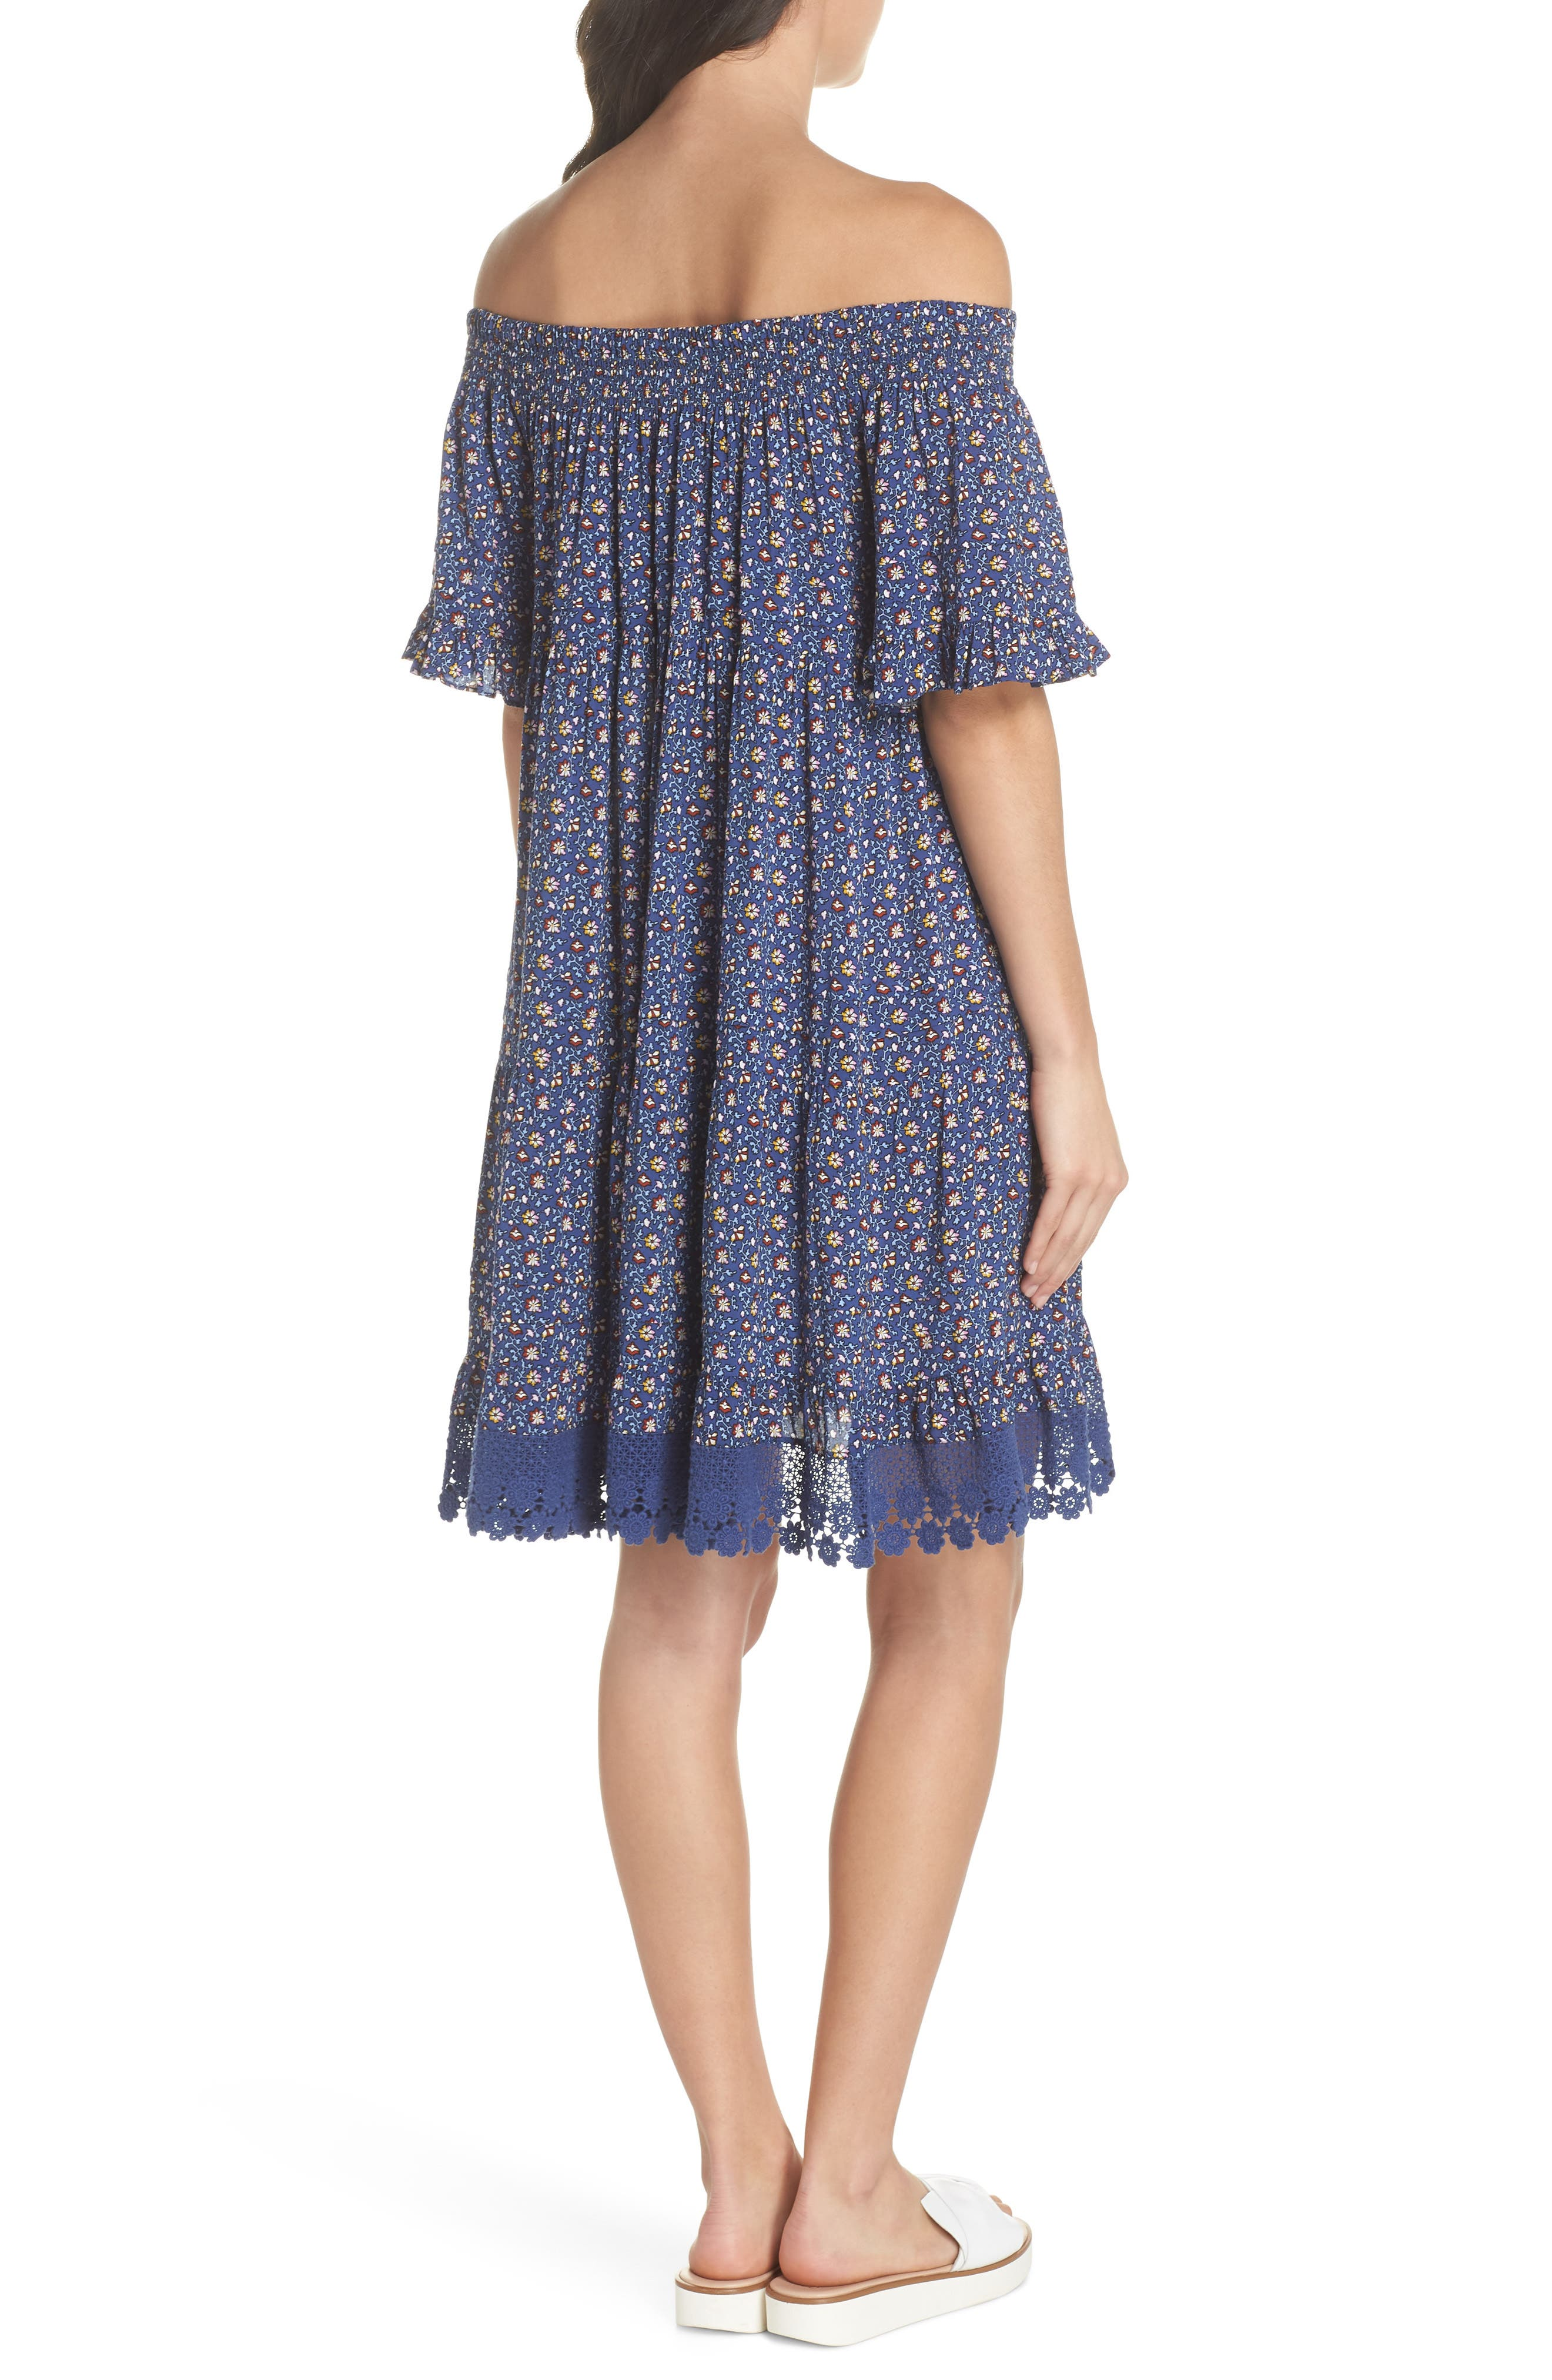 Wild Pansy Off the Shoulder Cover-Up Dress,                             Alternate thumbnail 2, color,                             Navy Wild Pansy